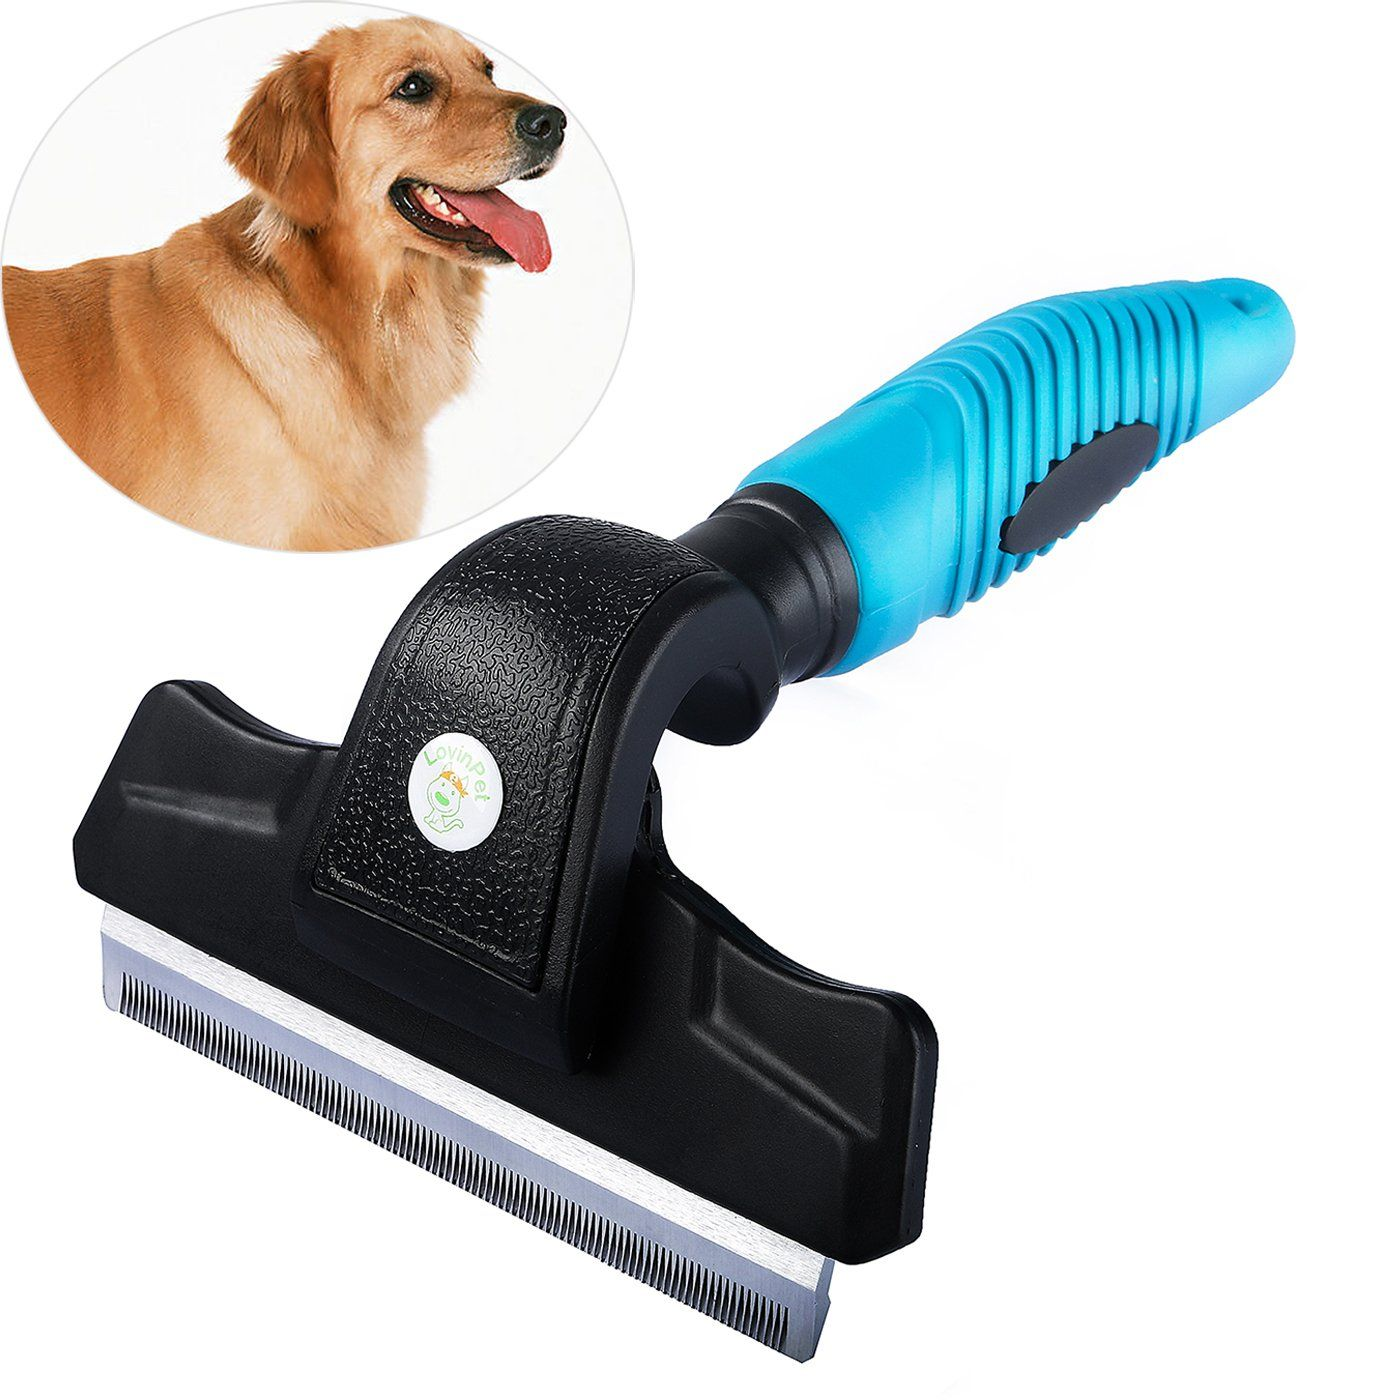 Lovinpet Dog And Cat Brush For Shedding Grooming Comb Stainless